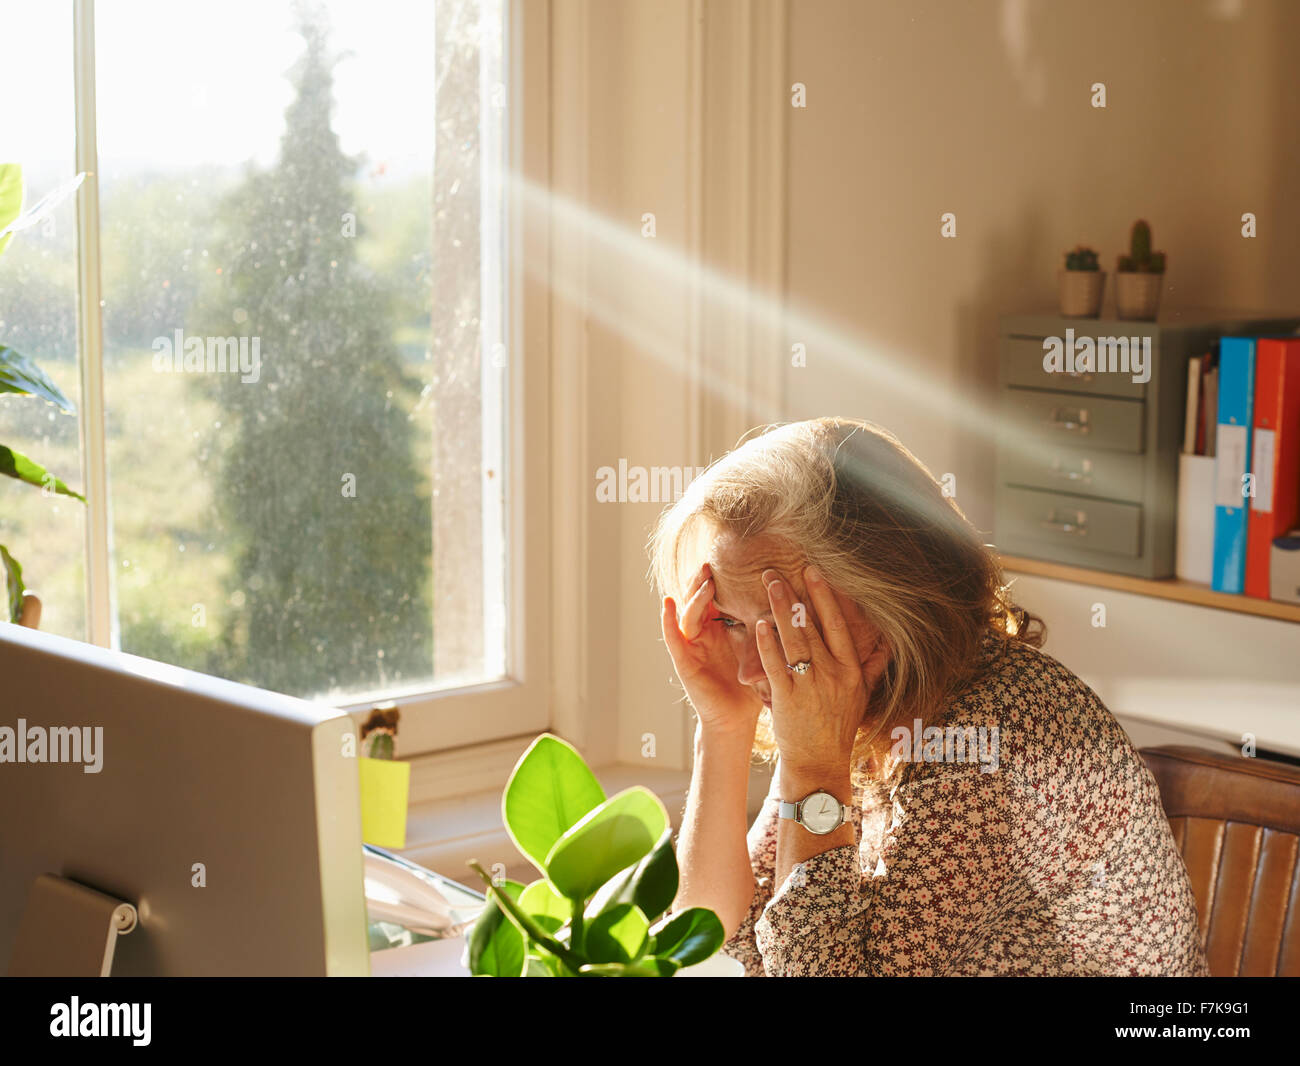 Stressed woman using computer in sunny home office - Stock Image